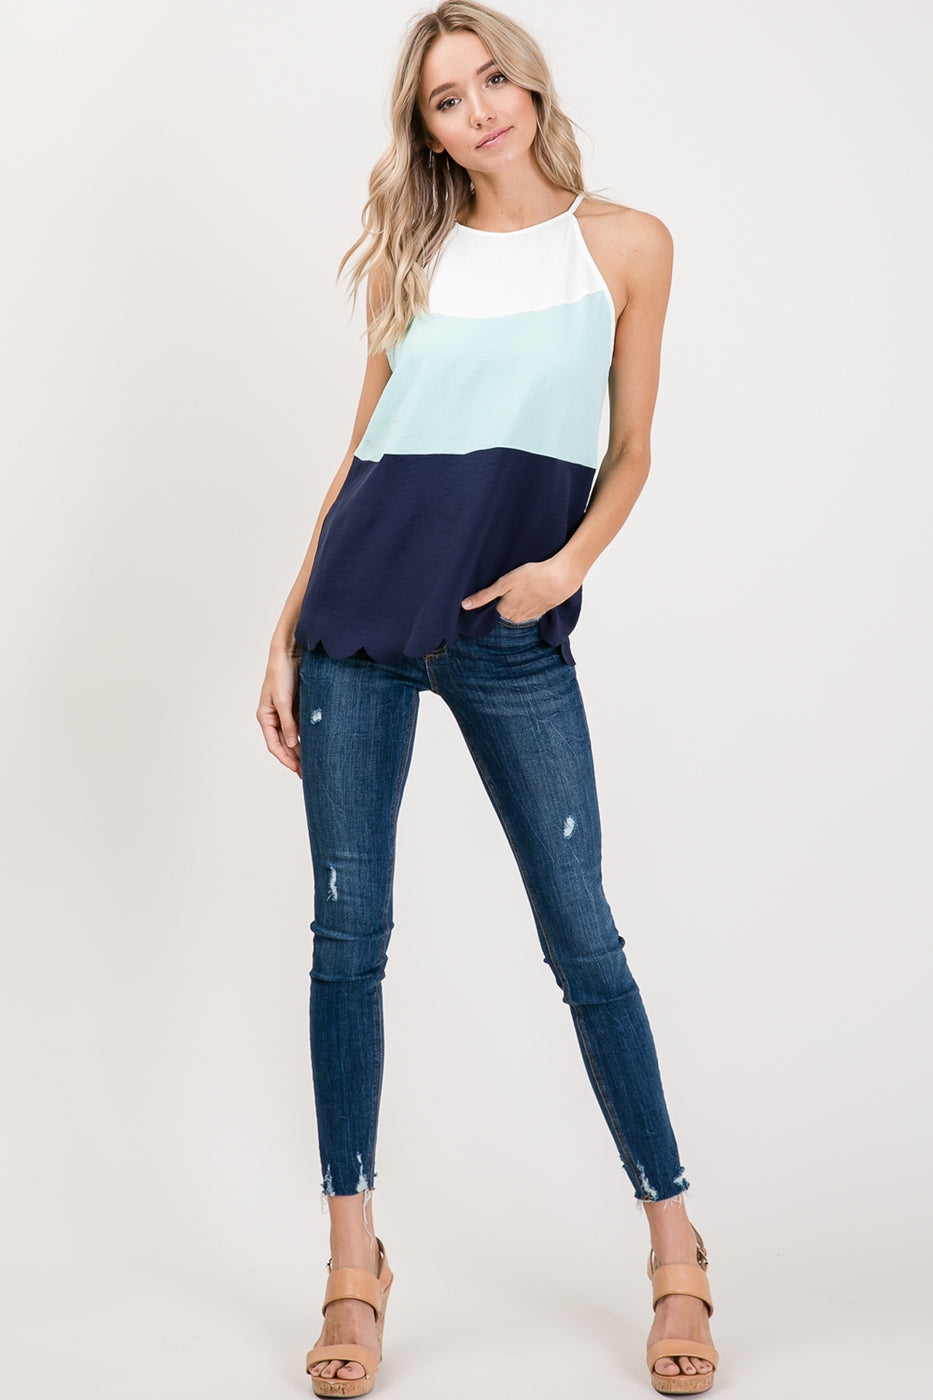 Blue Color Block Top